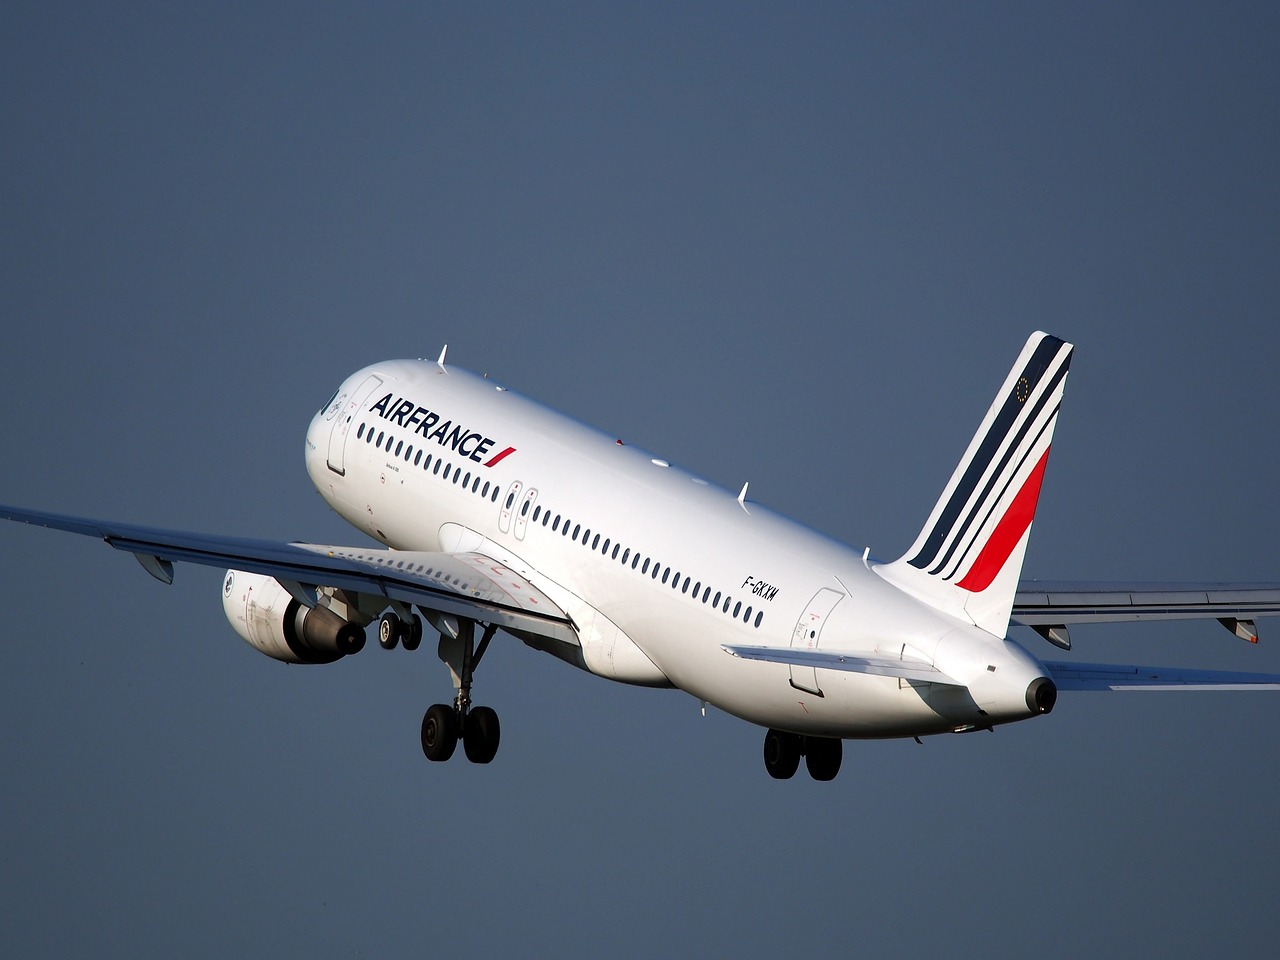 Air France : nouvelle proposition de la direction pour sortir de la crise